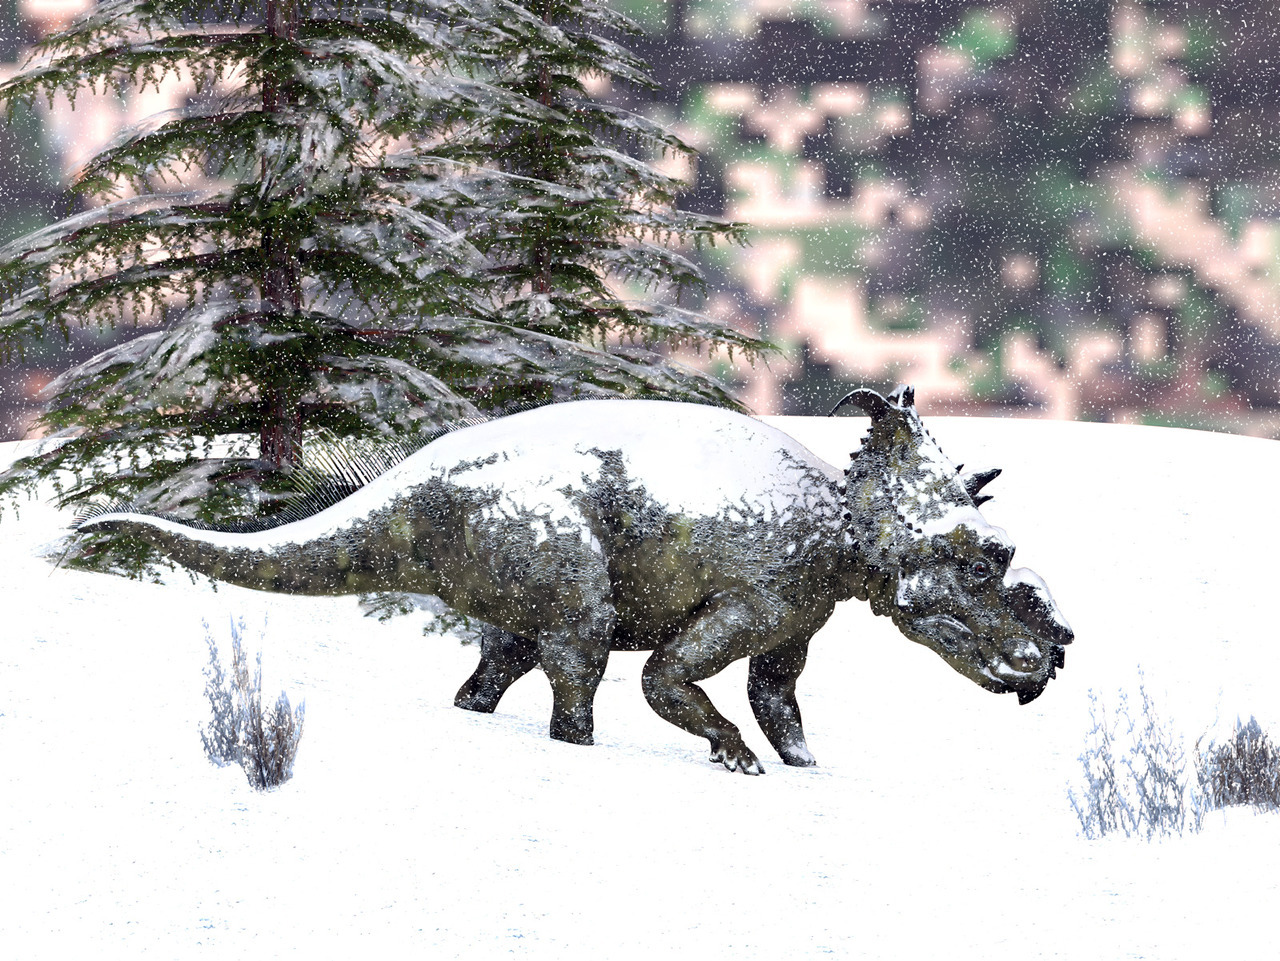 In the snow Pachyrhinosaurus Did arctic dinosaurs have to trudge through snow?  Maybe not often, but surely sometimes…